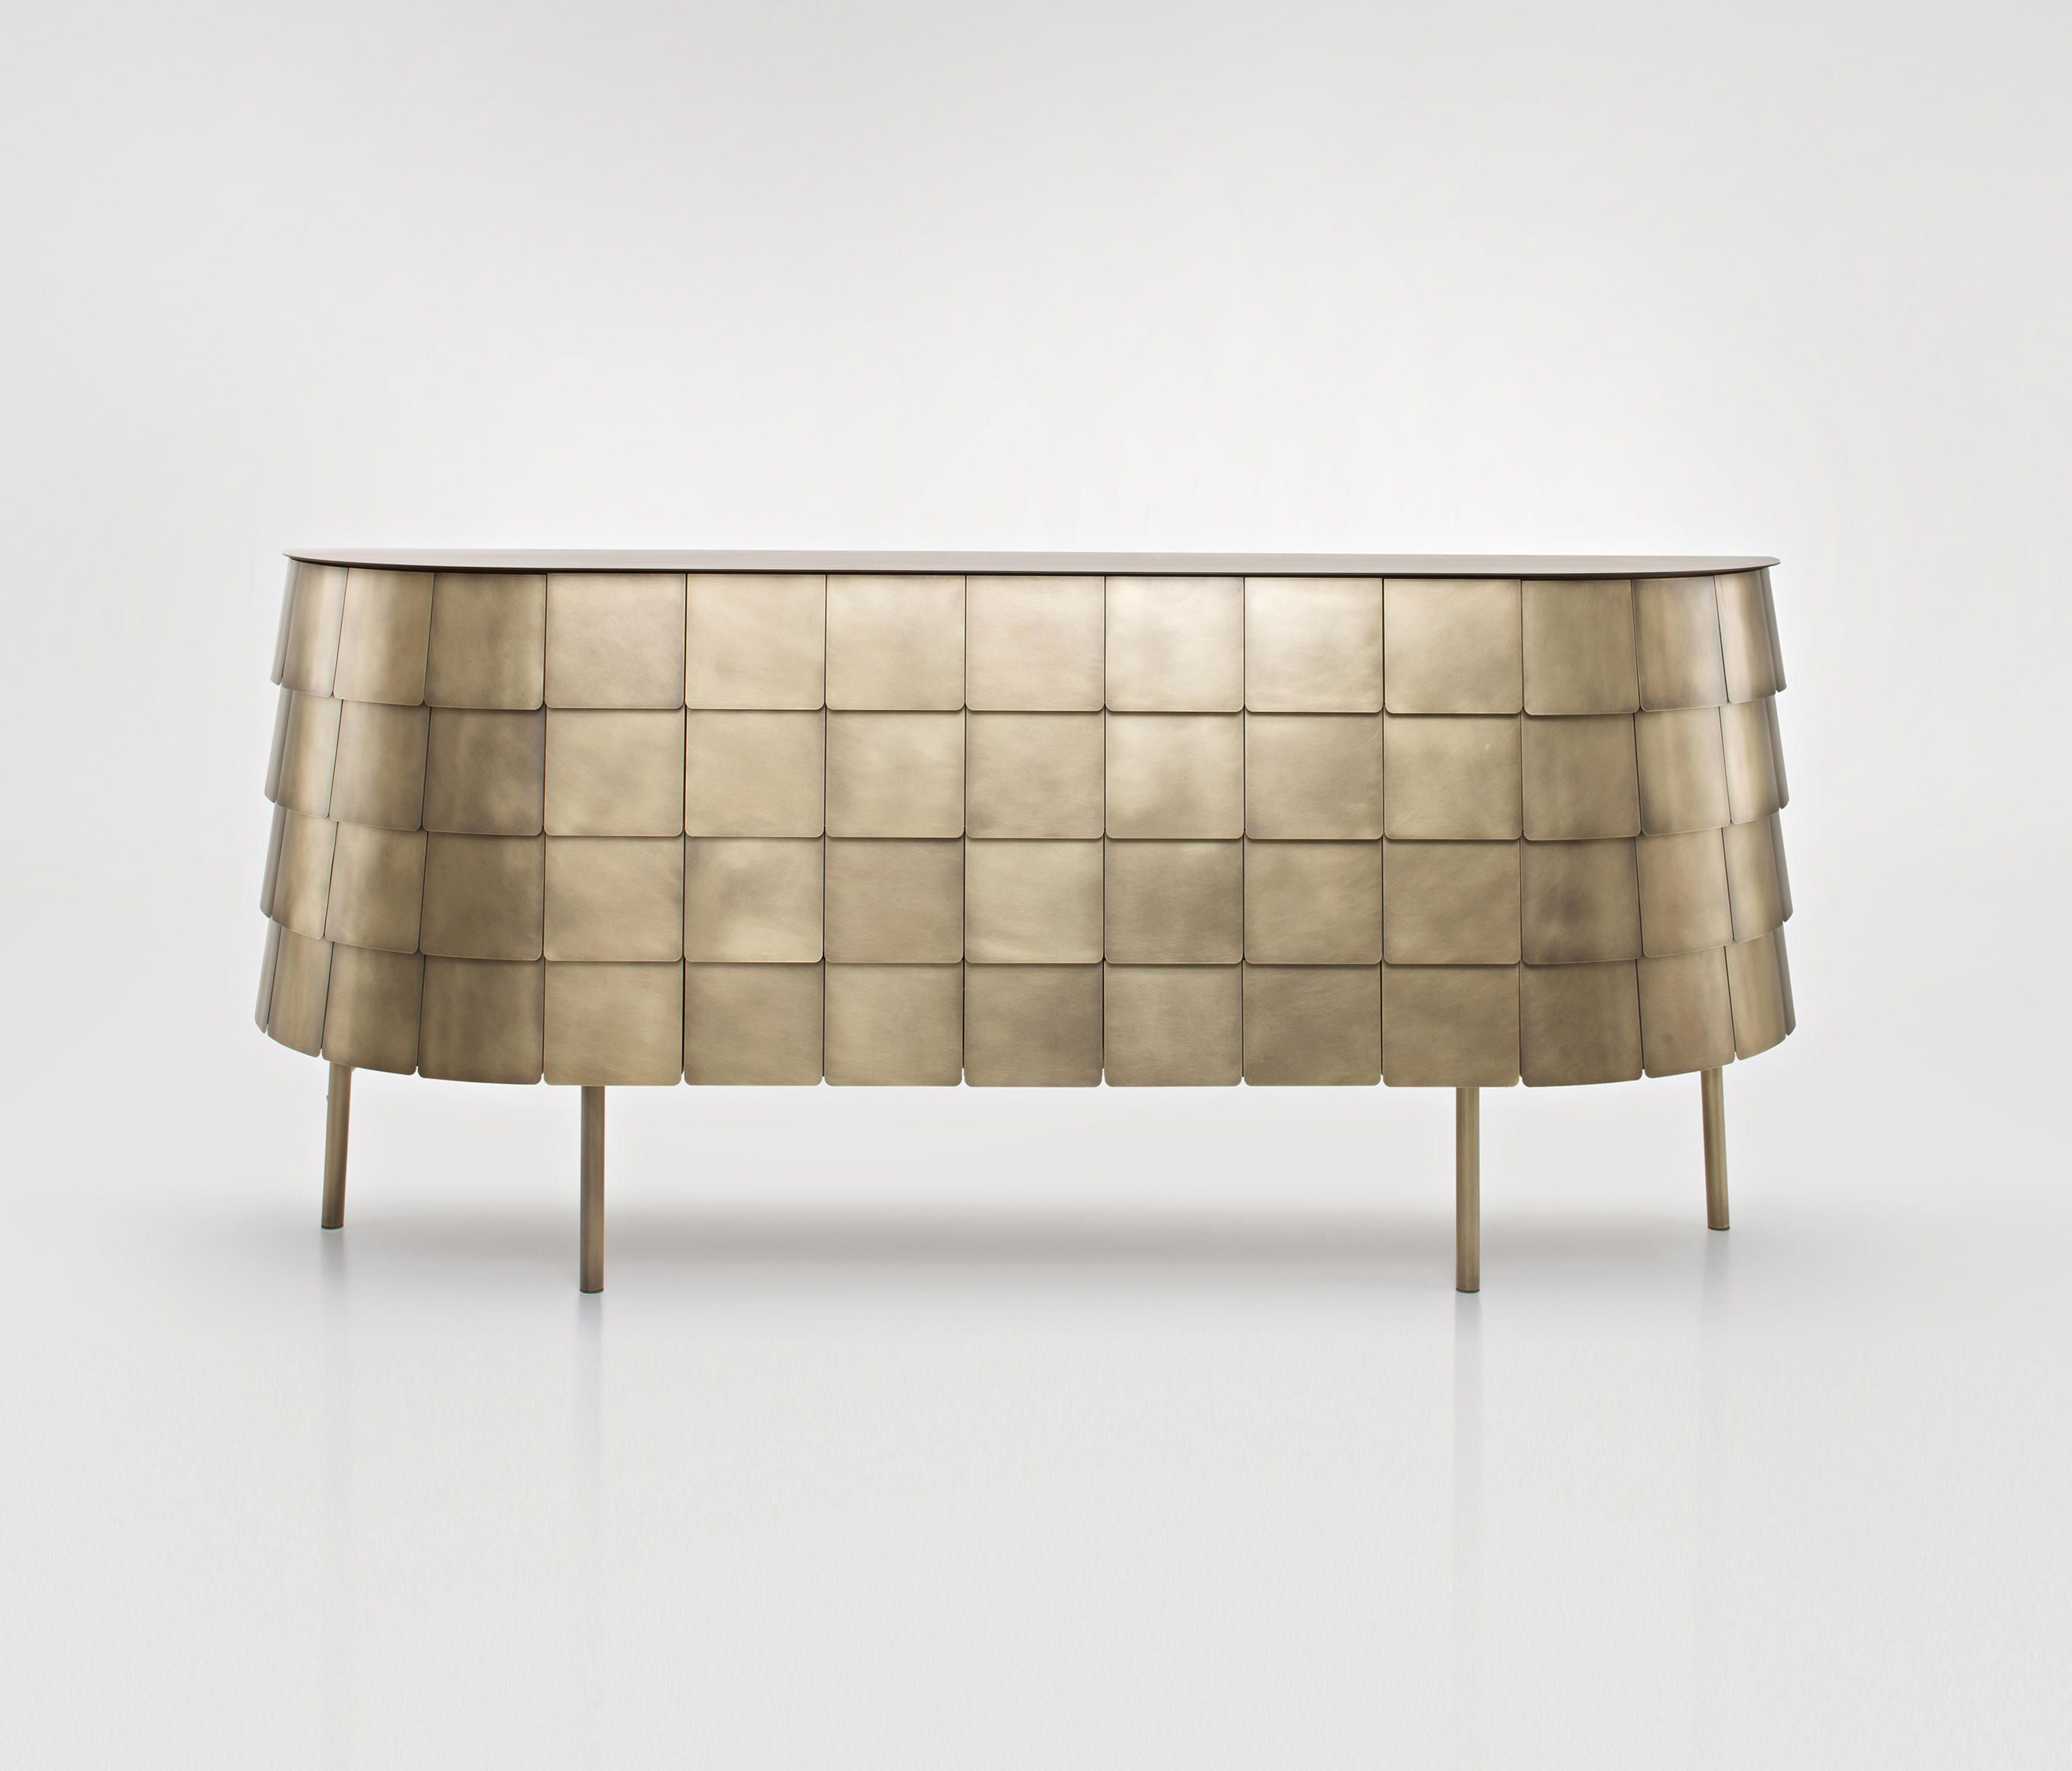 De Castelli: Metal At Its Finest | Side Board | Furniture Within Castelli Sideboards (View 4 of 20)